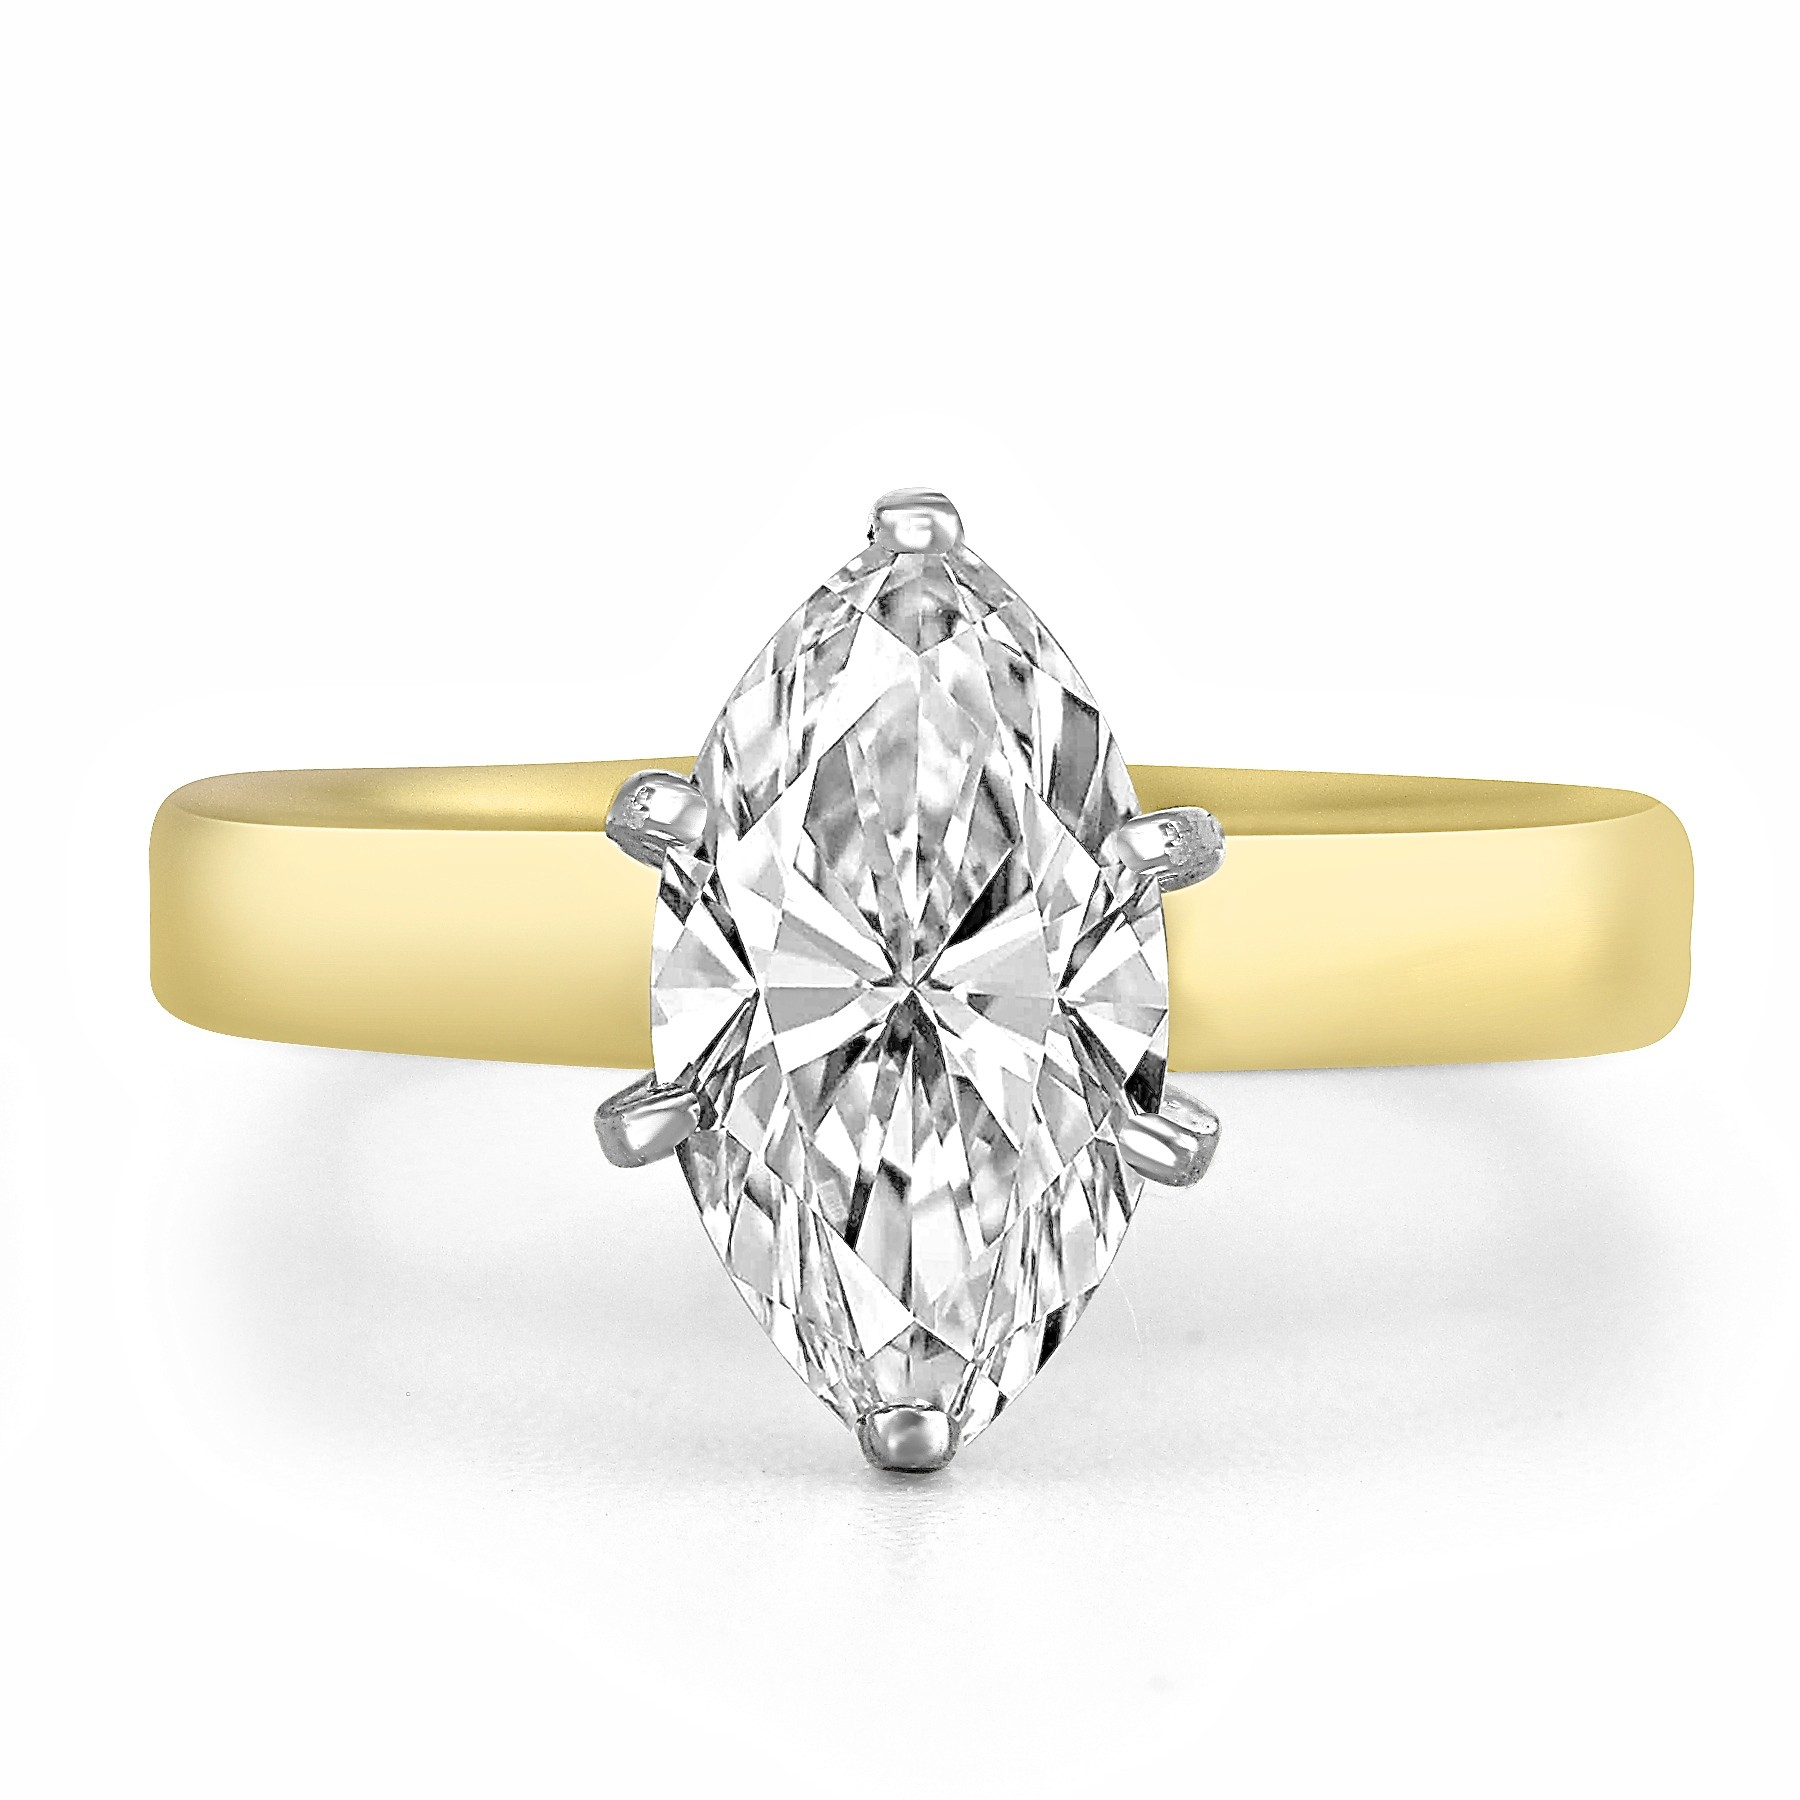 Marquise Cut Diamond Engagement Rings – A Favorite Choice For Top Celebrities recommend